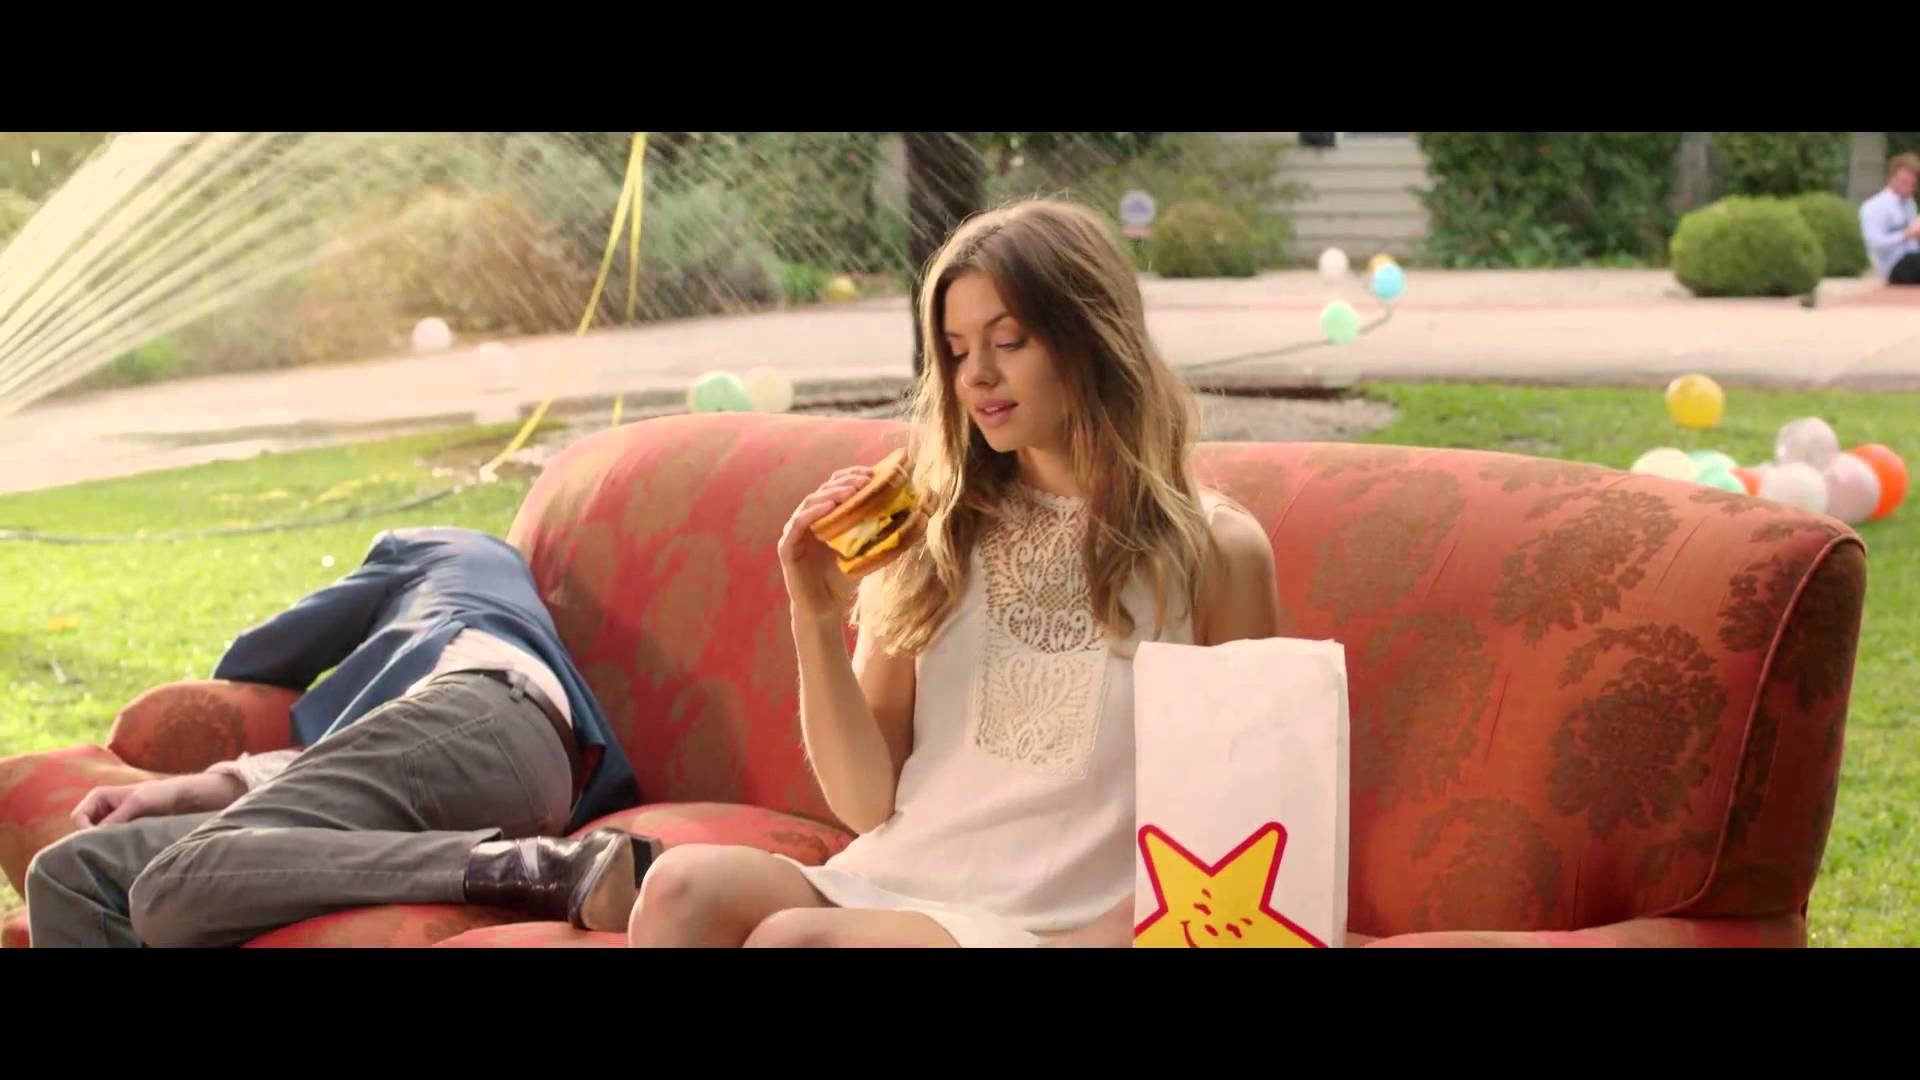 carl s jr commercial Carl's jr is back with another sexy commercial this time, samantha hoopes celebrates the most american thickburger in her own patriotic way — by wearing an american flag bikini.